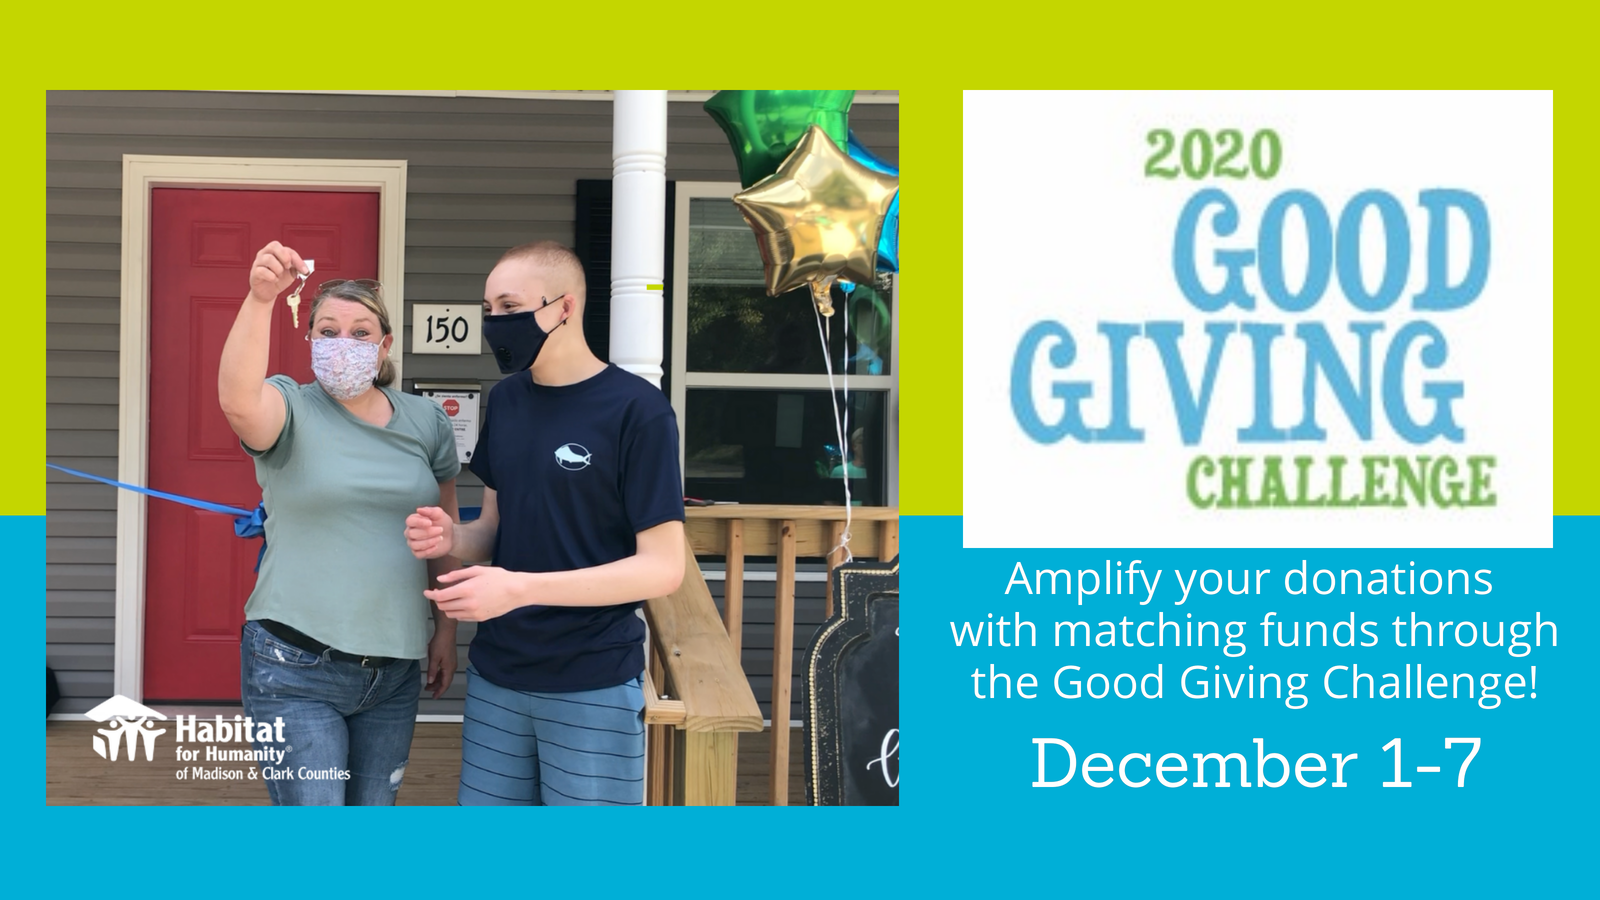 The Good Giving Challenge